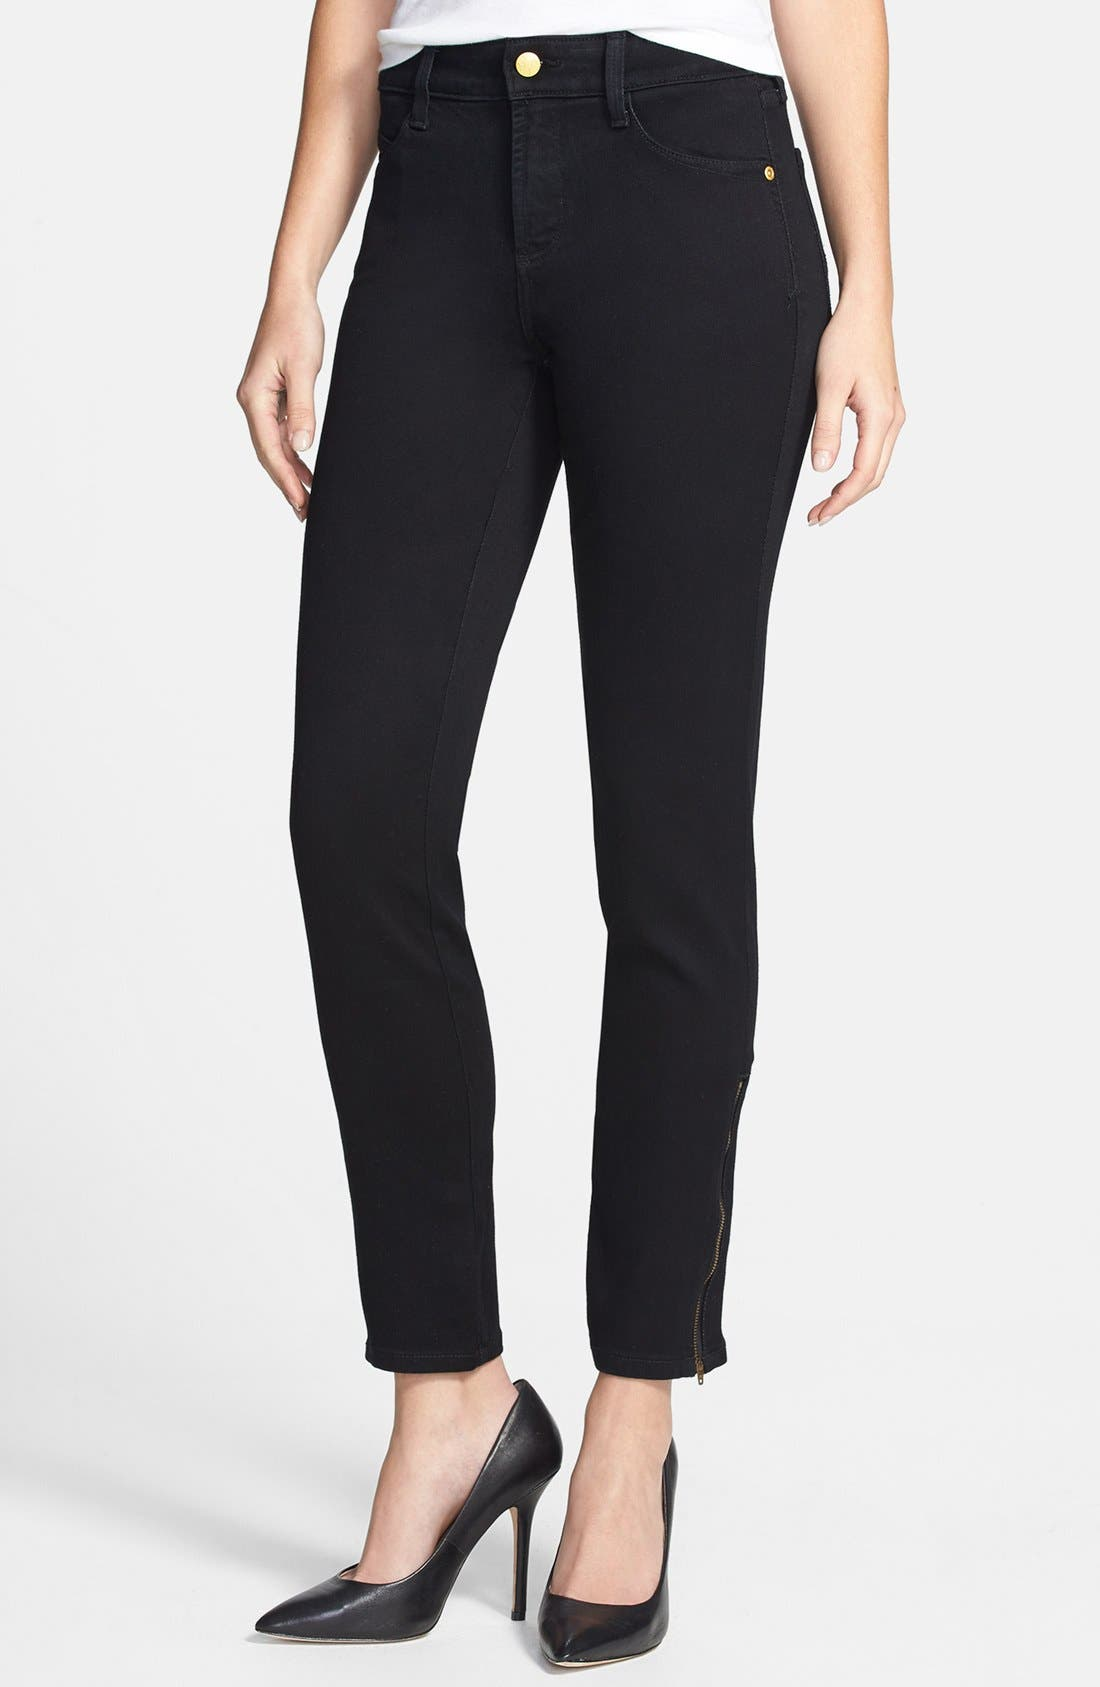 Main Image - NYDJ 'Josephine' Side Zip Stretch Ankle Jeans (Black)